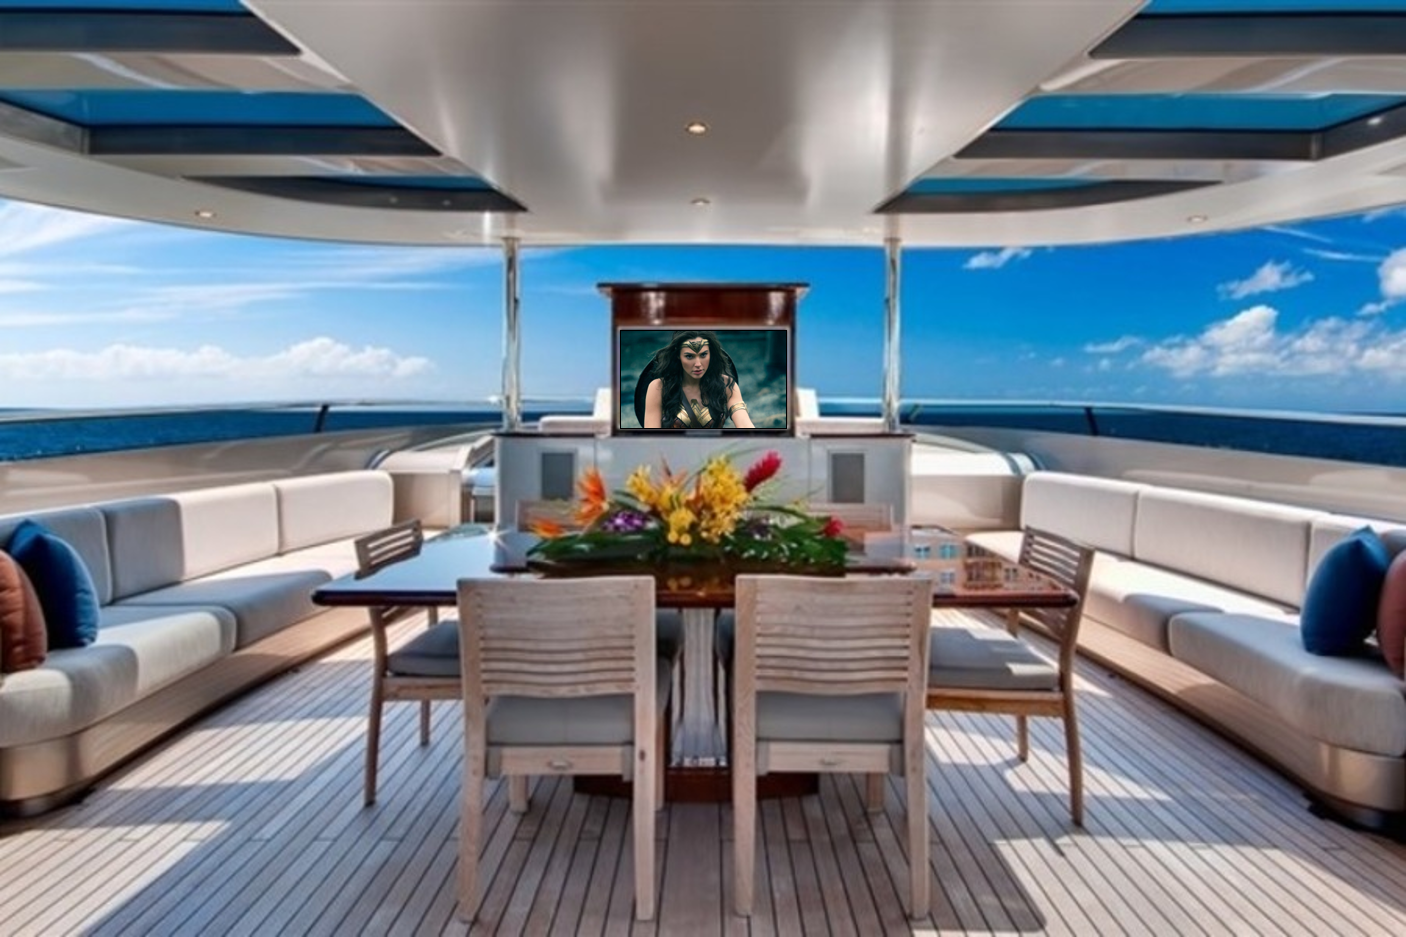 Enjoy the High Life with a Premium Yacht Sound System